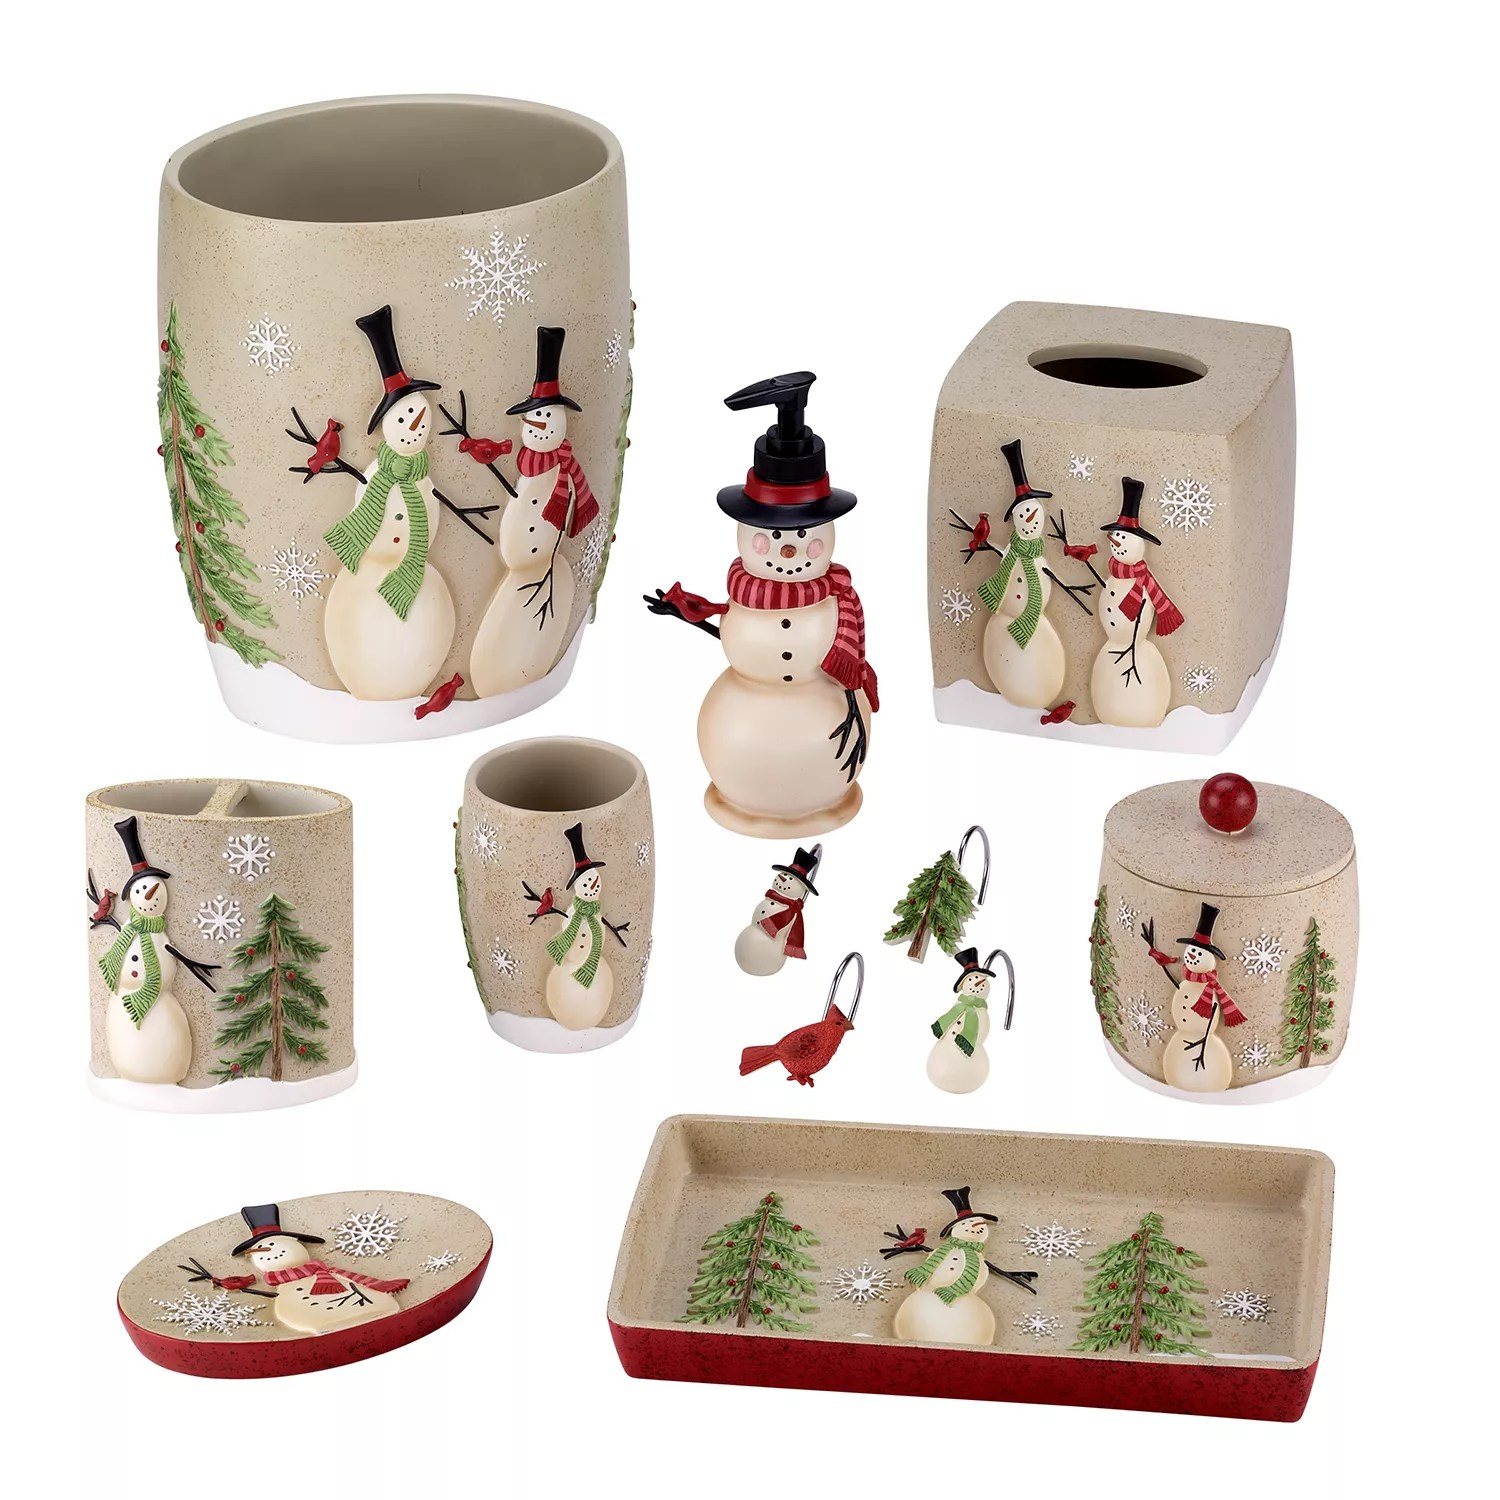 Snowman Bathroom Sets Avanti Snowman Bathroom Accessories Collection